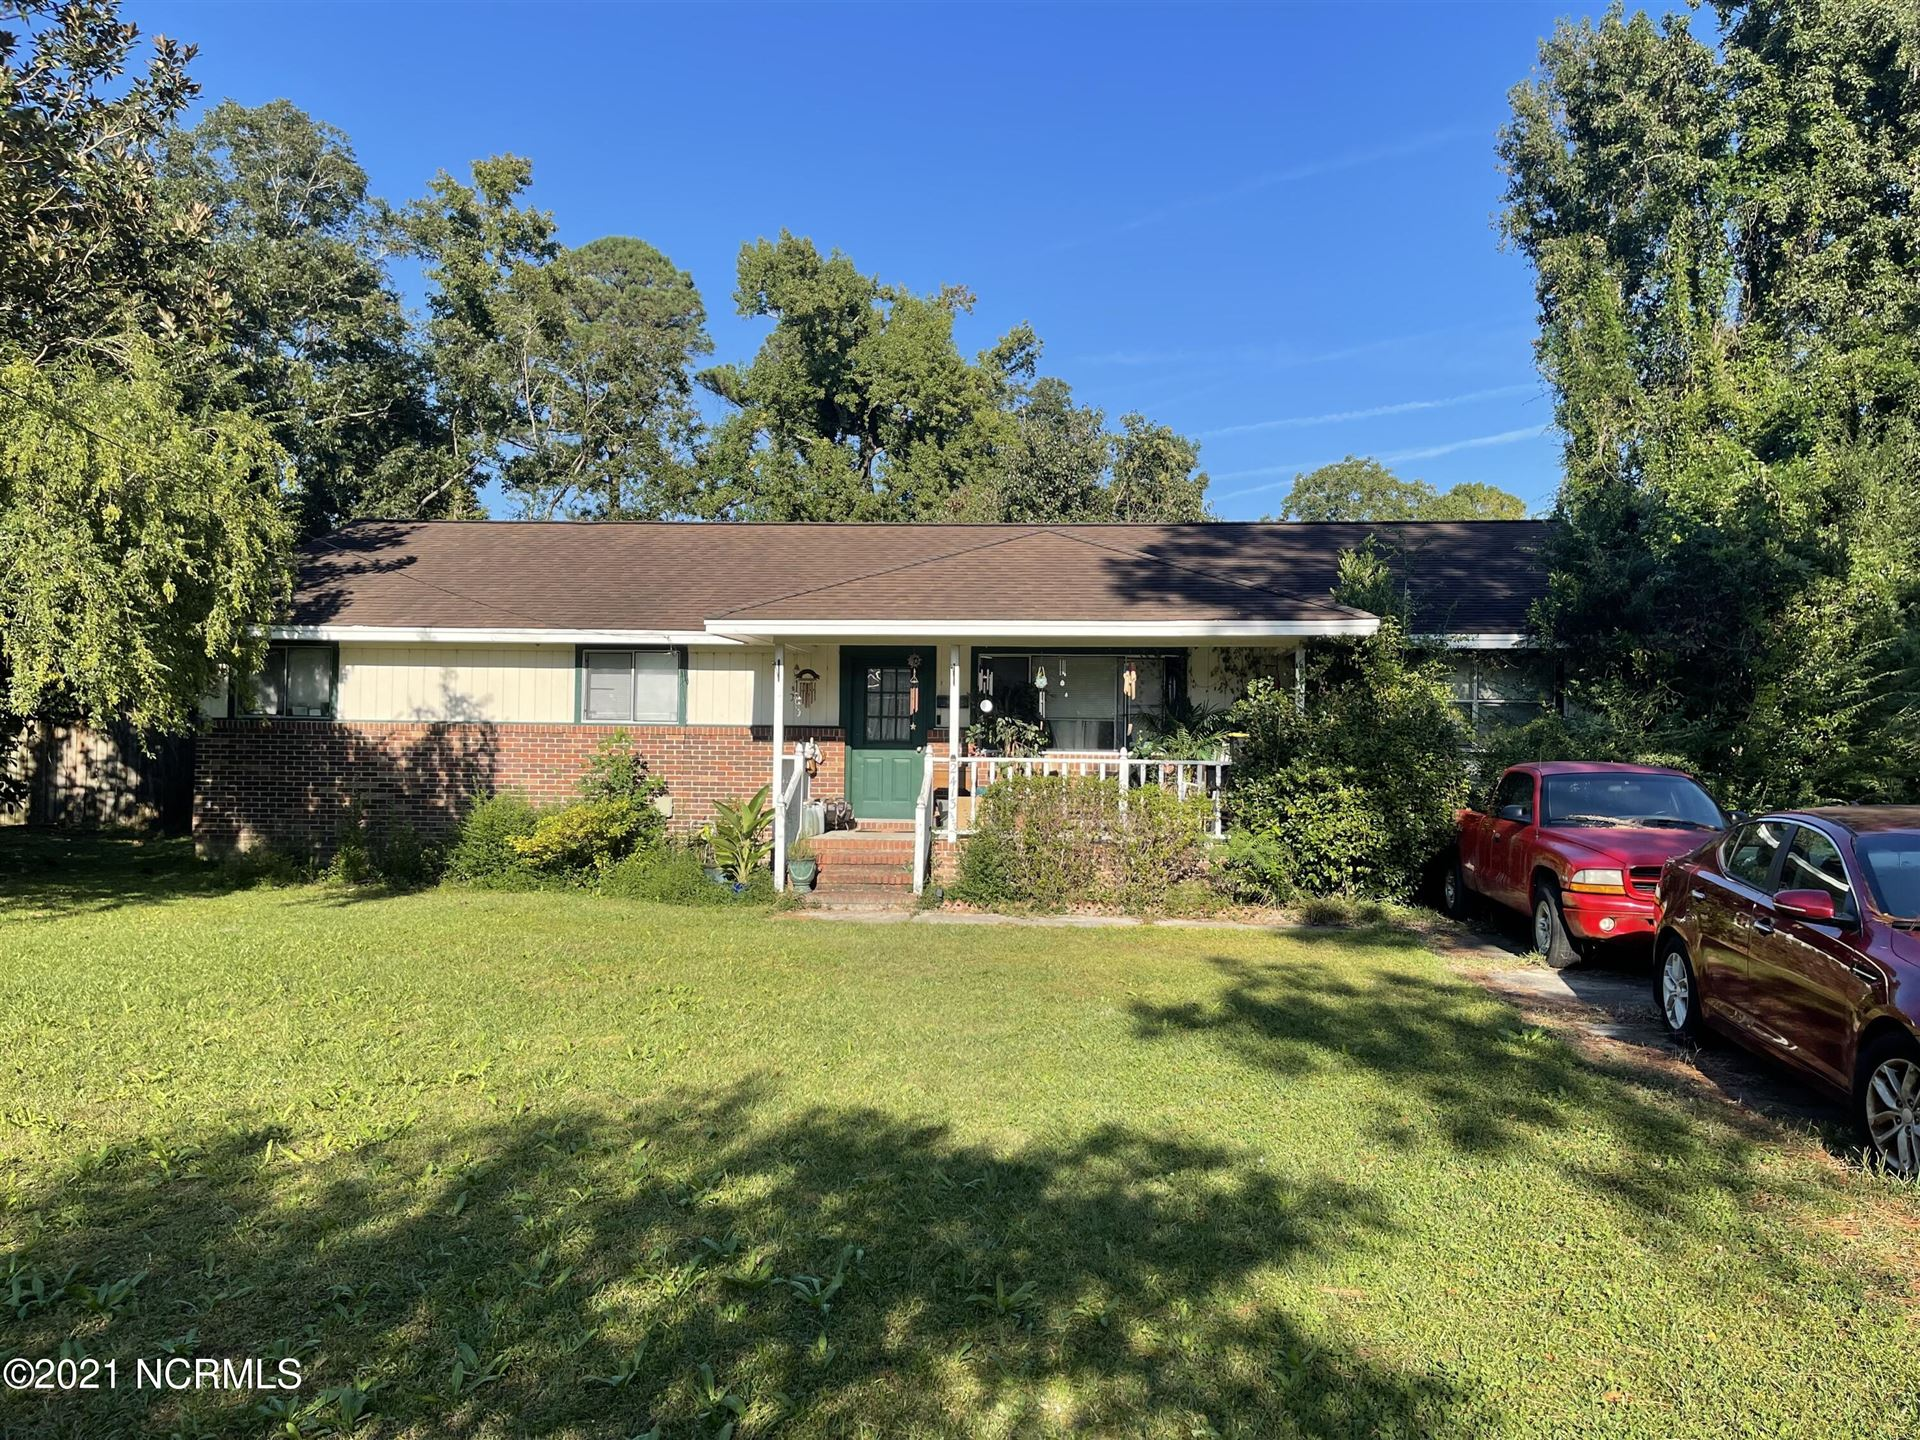 Photo of 2413 Westminister Way, Wilmington, NC 28405 (MLS # 100295294)